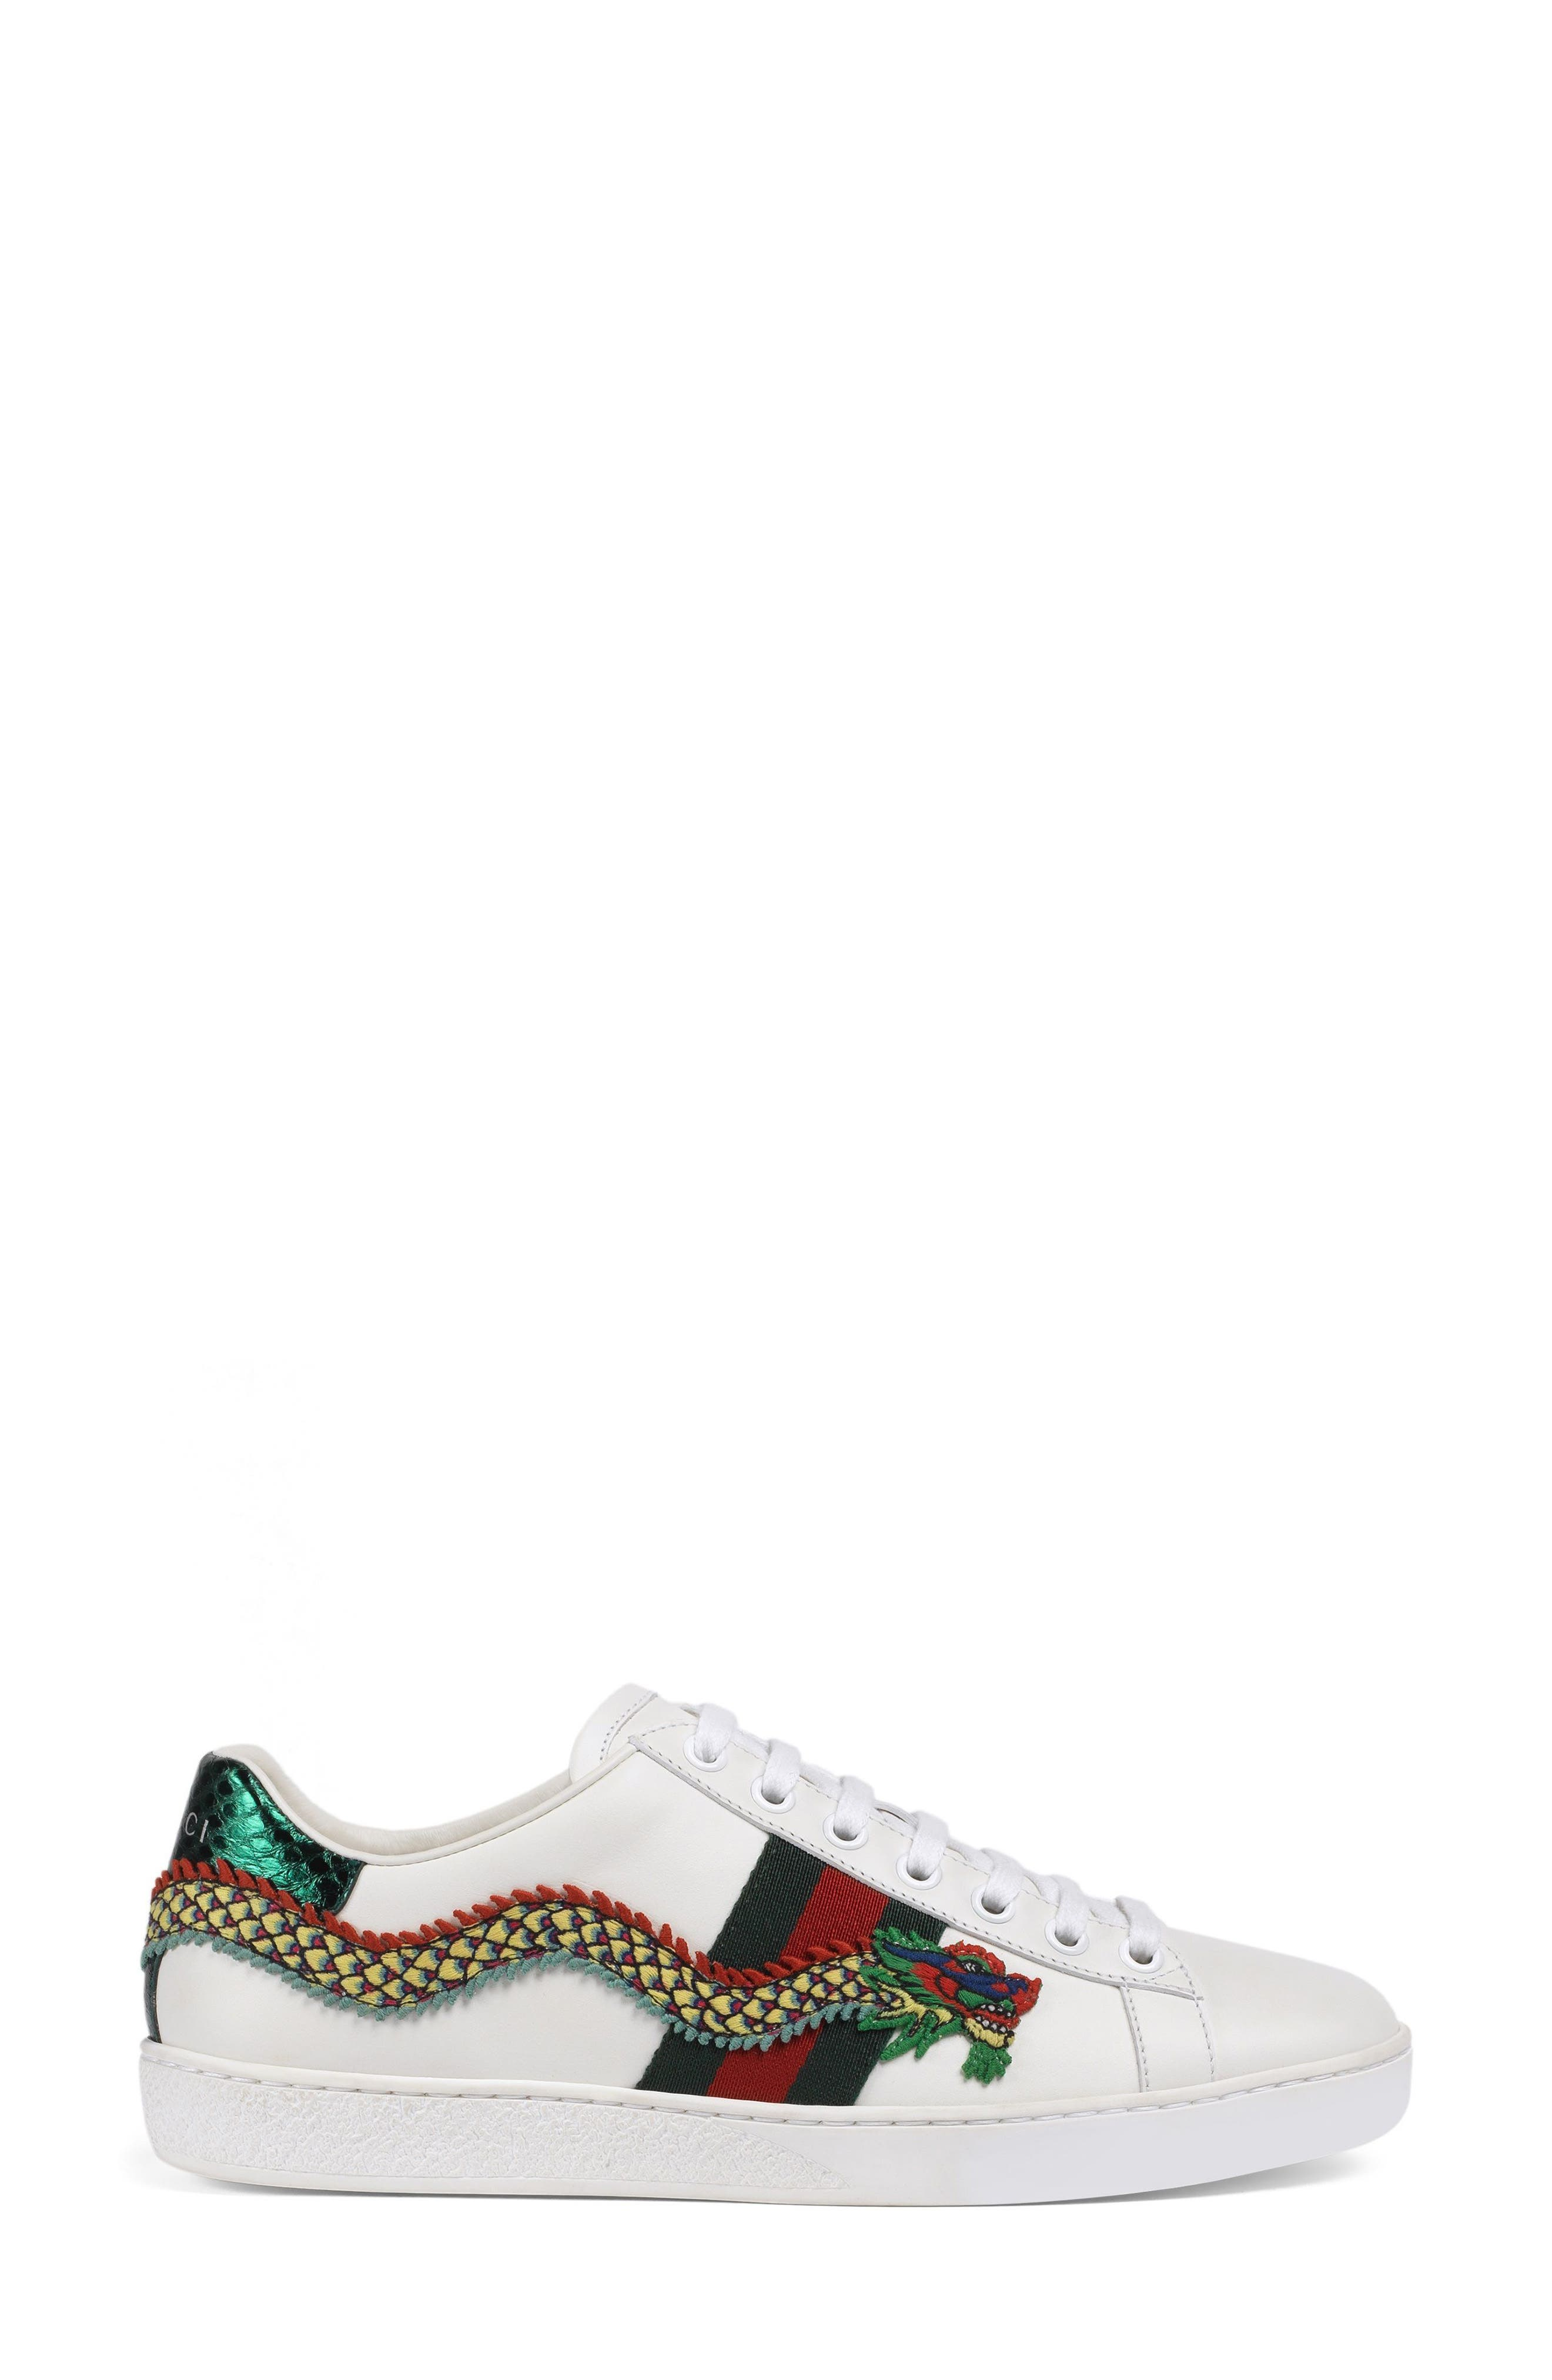 New Ace Dragon Sneaker,                             Main thumbnail 1, color,                             White Leather